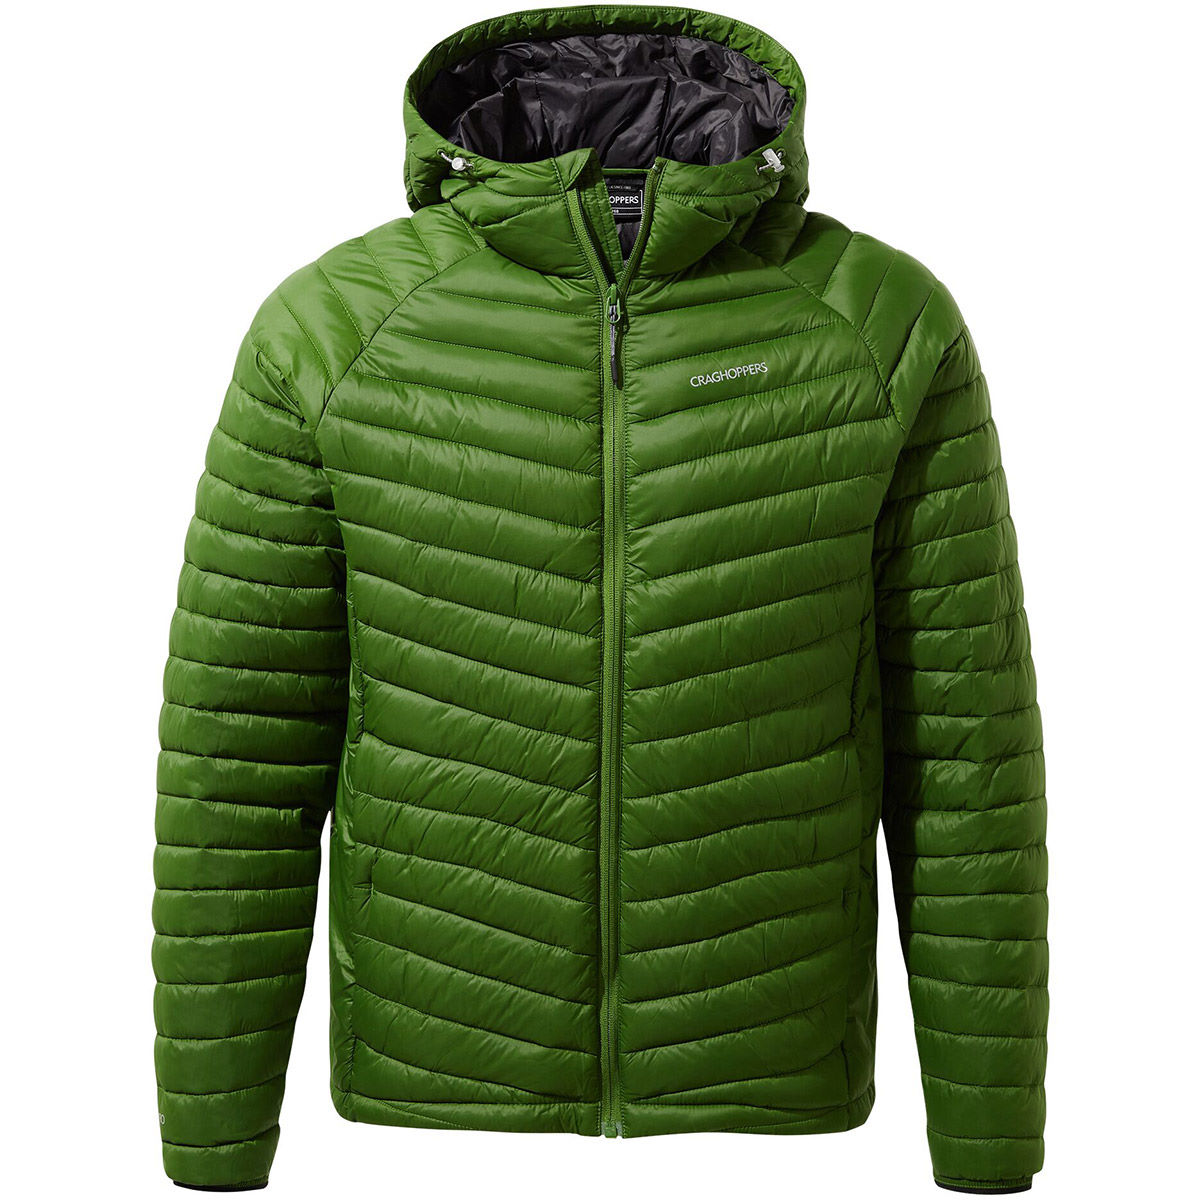 Craghoppers Expolite Hooded Jacket - Large Dark Agave Green  Jackets